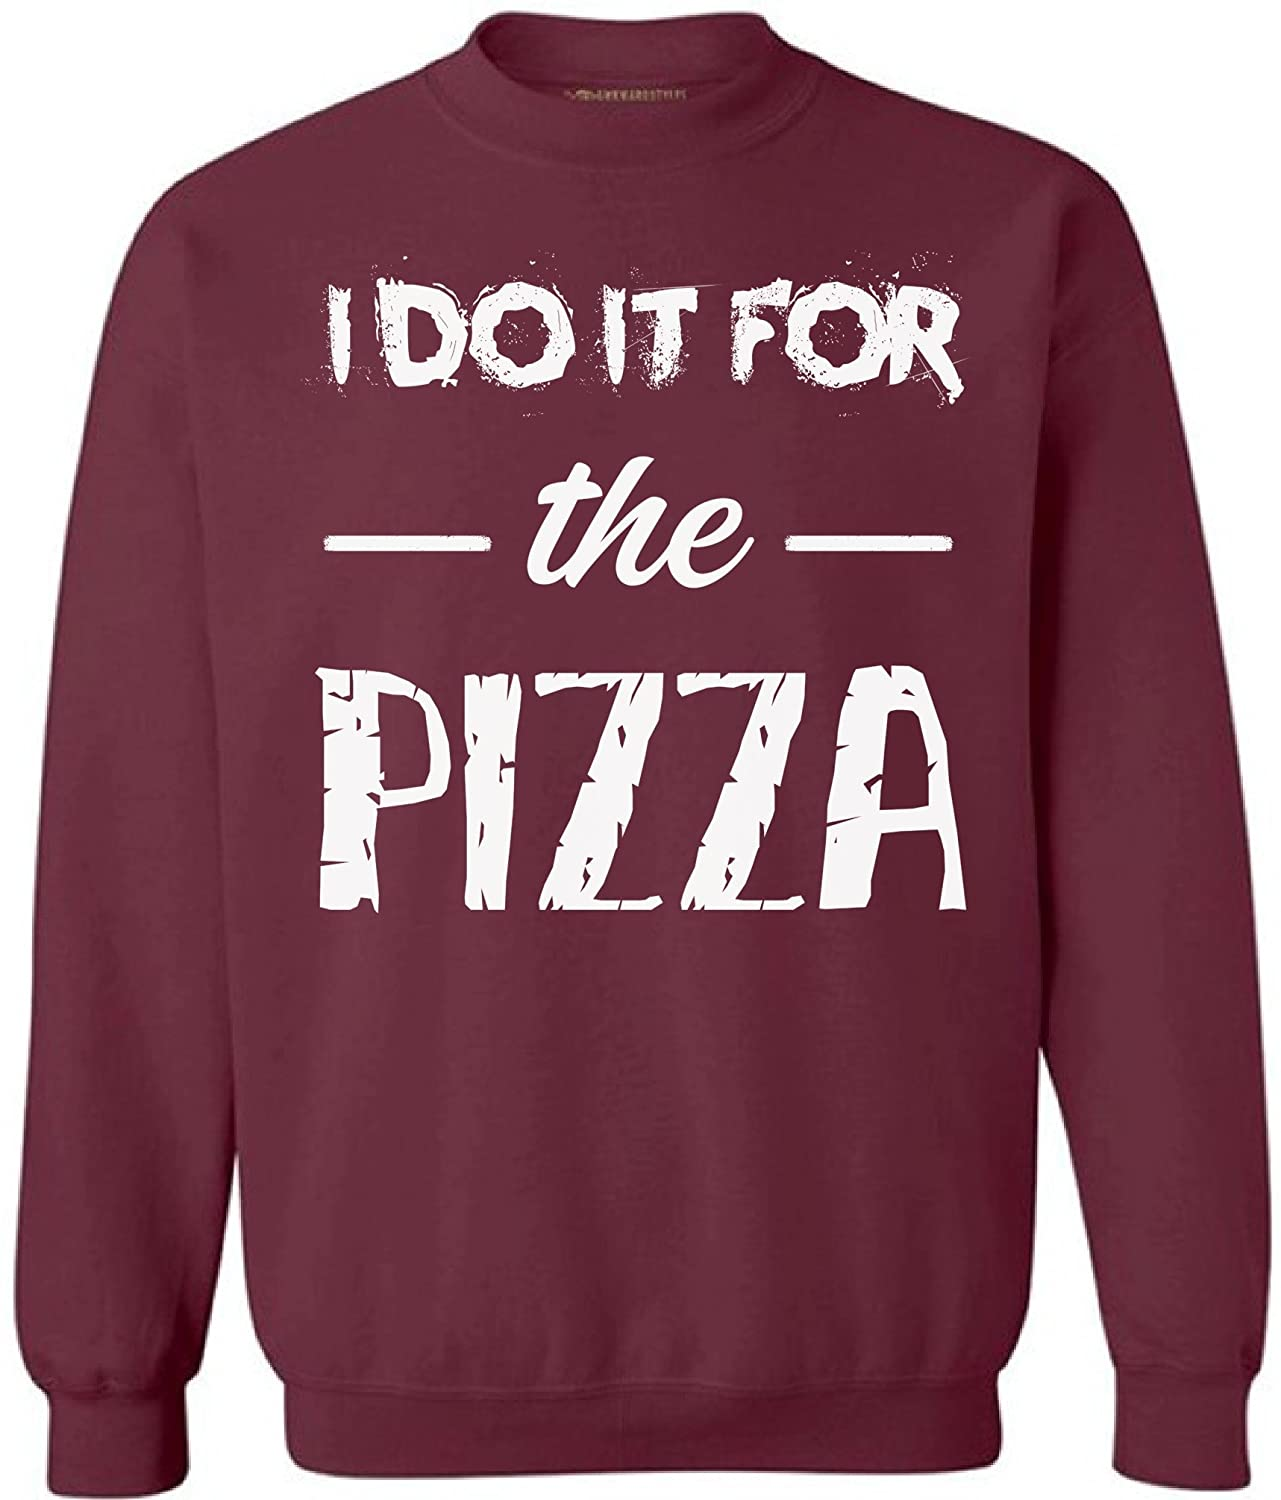 Awkward Styles Unisex I Do It for The Pizza Sweatshirts Crewneck Funny Gym Pizza Lover White